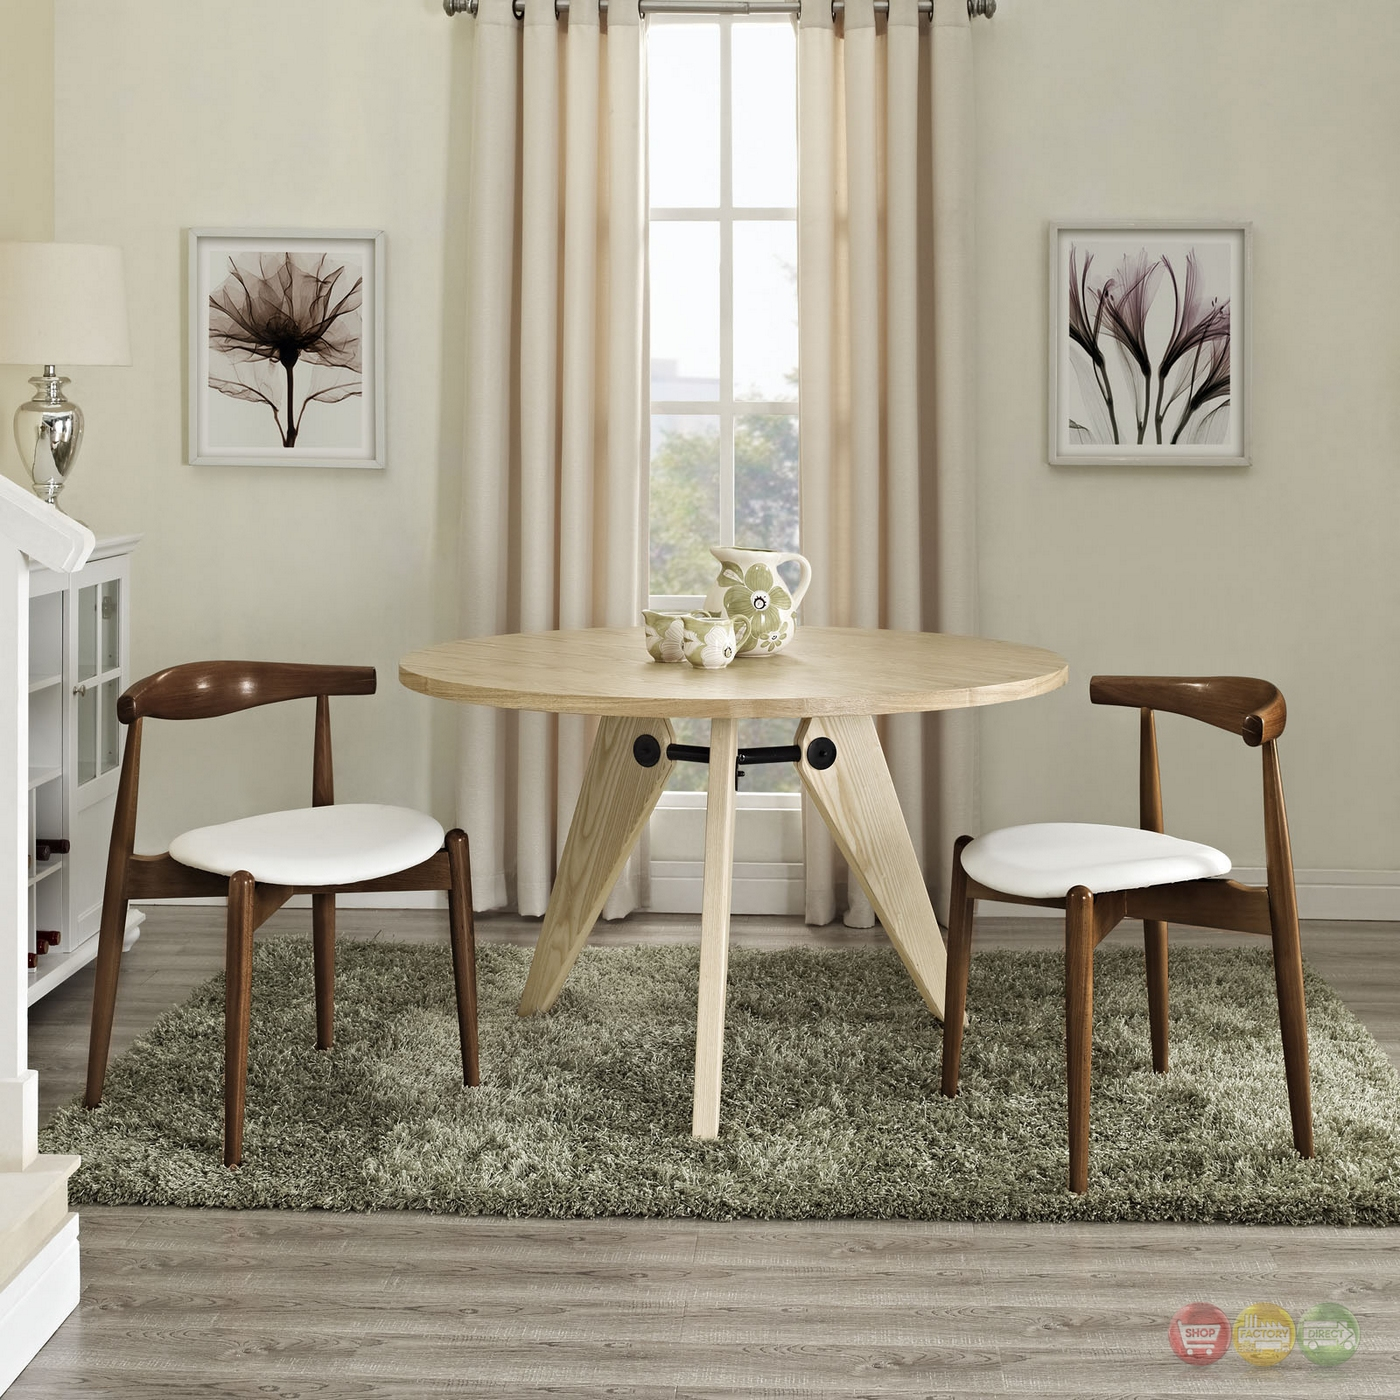 Wonderful image of  Wood Dining Side Chairs w/ Upholstered Seats Dark Walnut White with #403526 color and 1400x1400 pixels